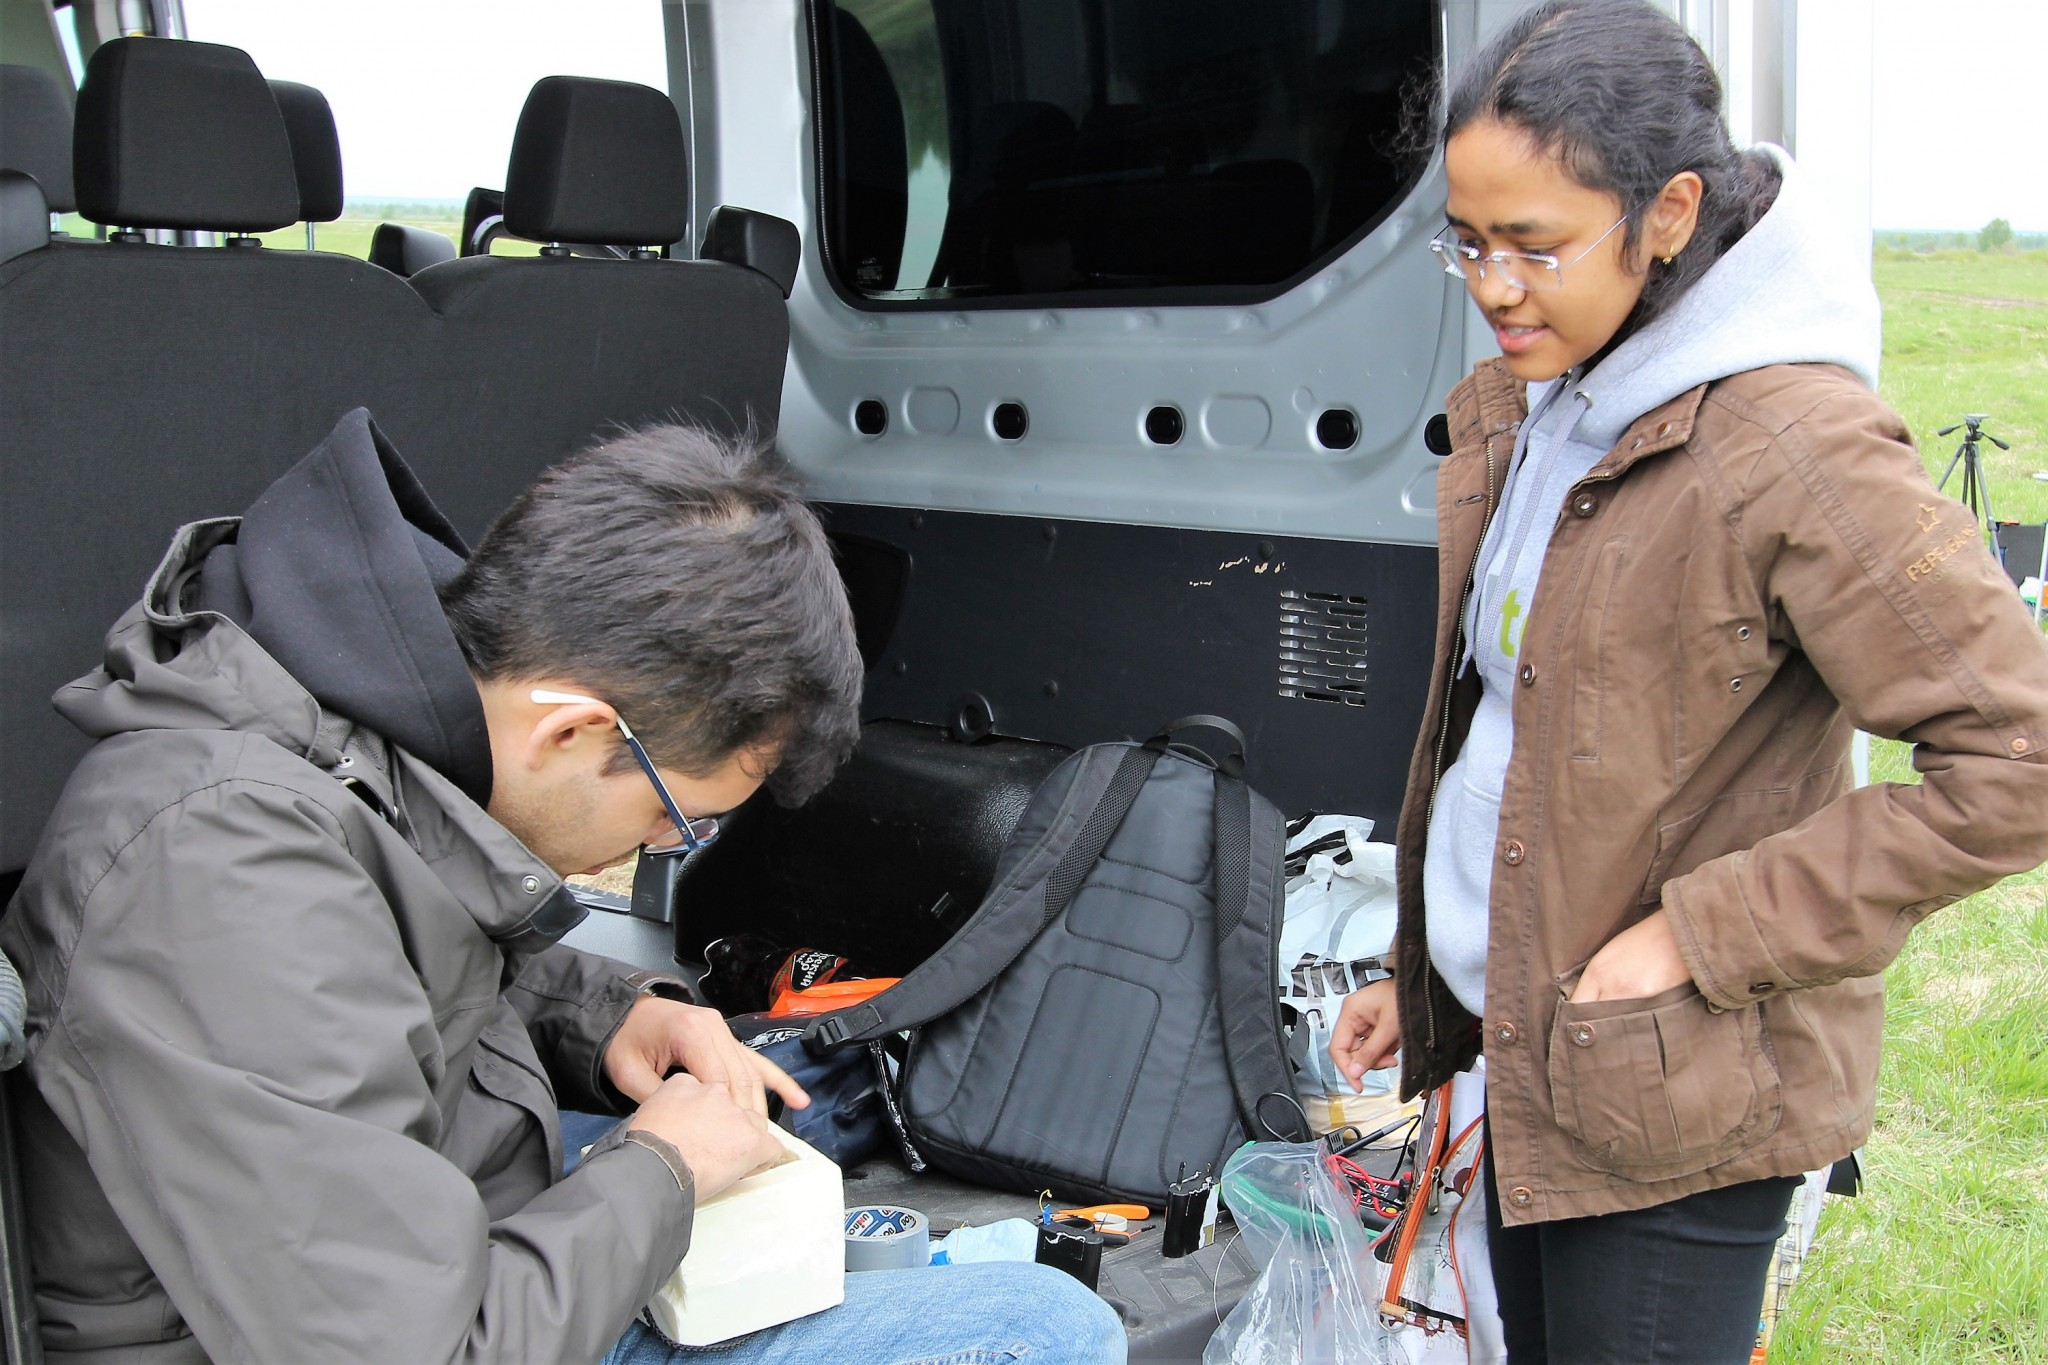 Miguel Cabrera and Shreya Santra use the back of a van as a workspace while preparing their team's payload. Photo: Skoltech.